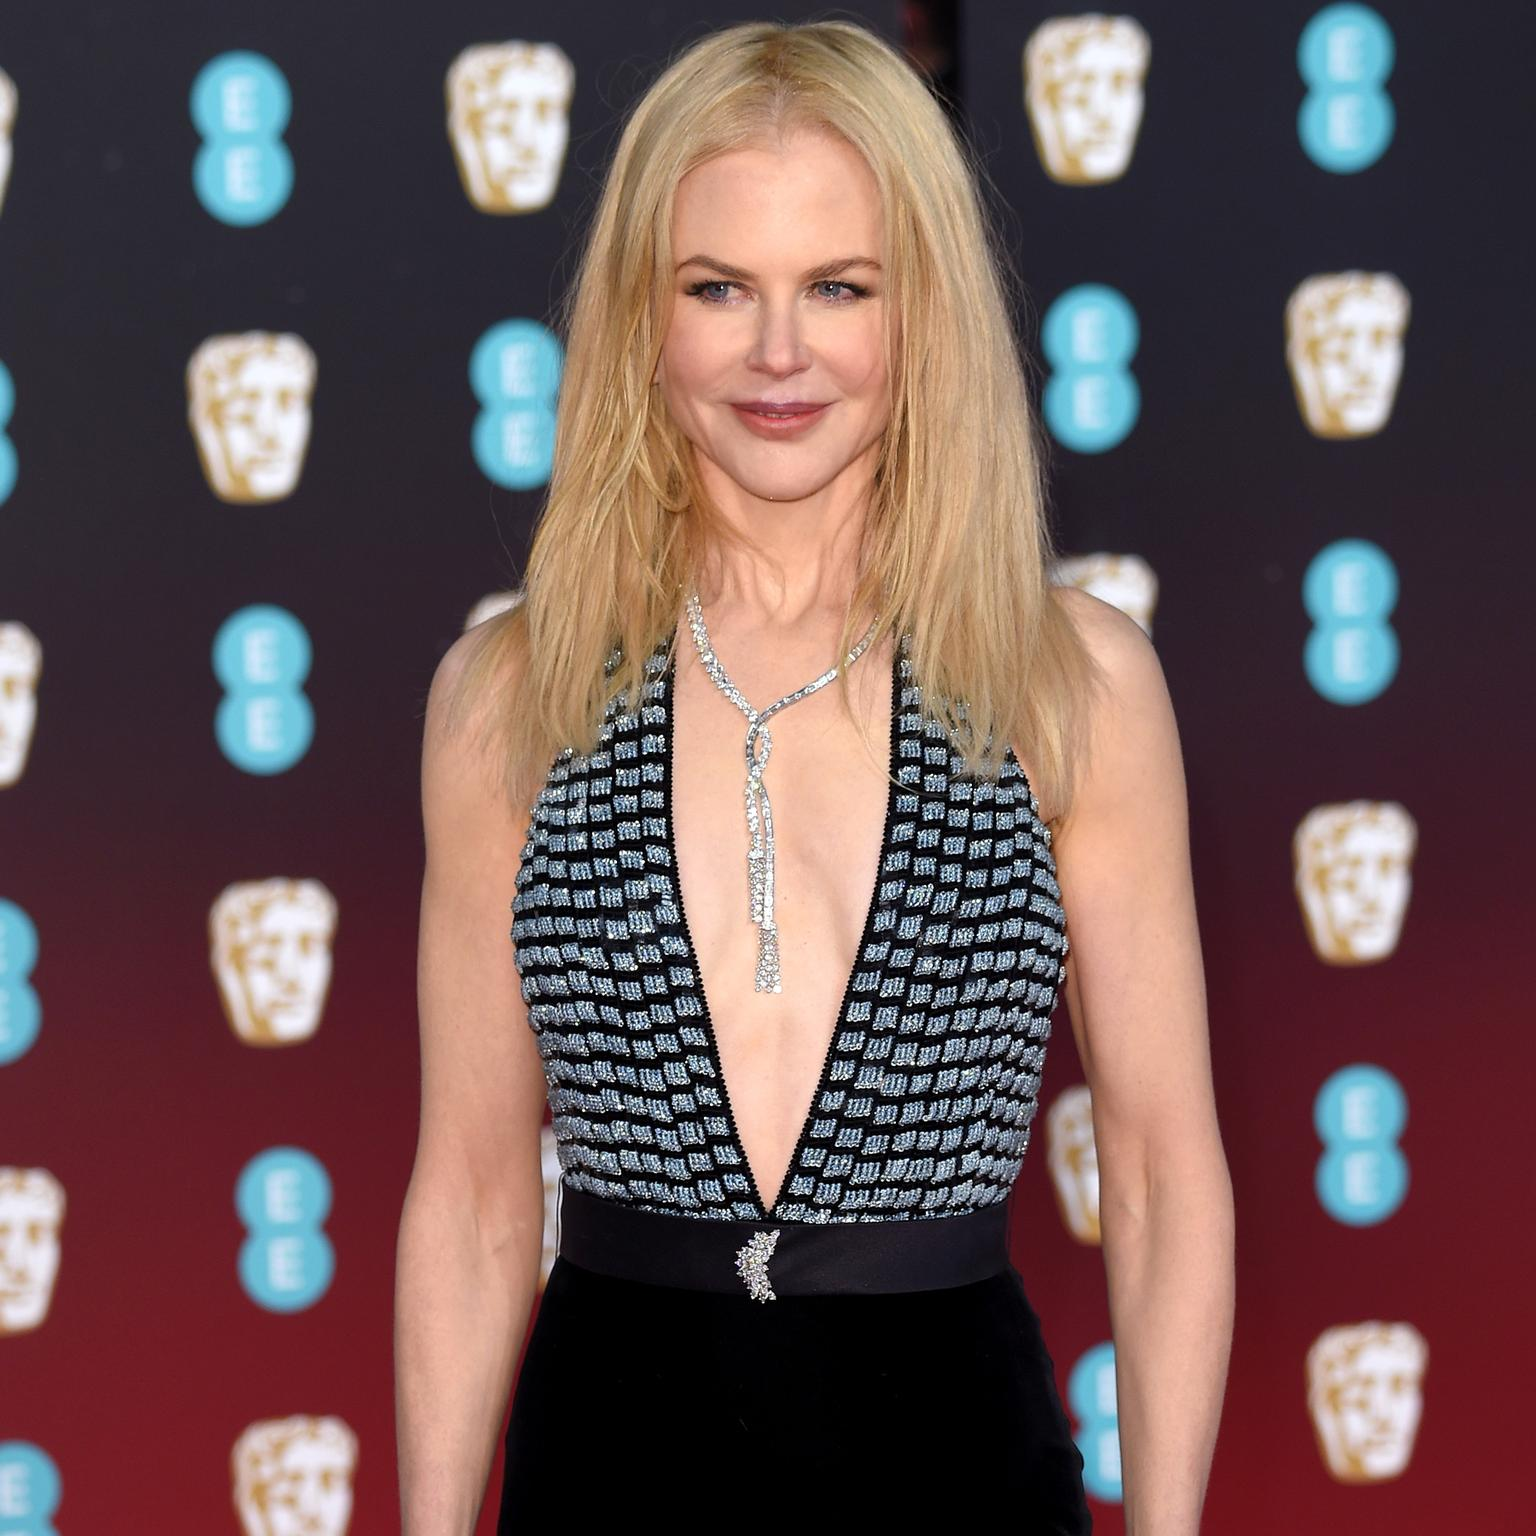 Nicole Kidman wearing a Harry Winston necklace at the 2017 BAFTAs.